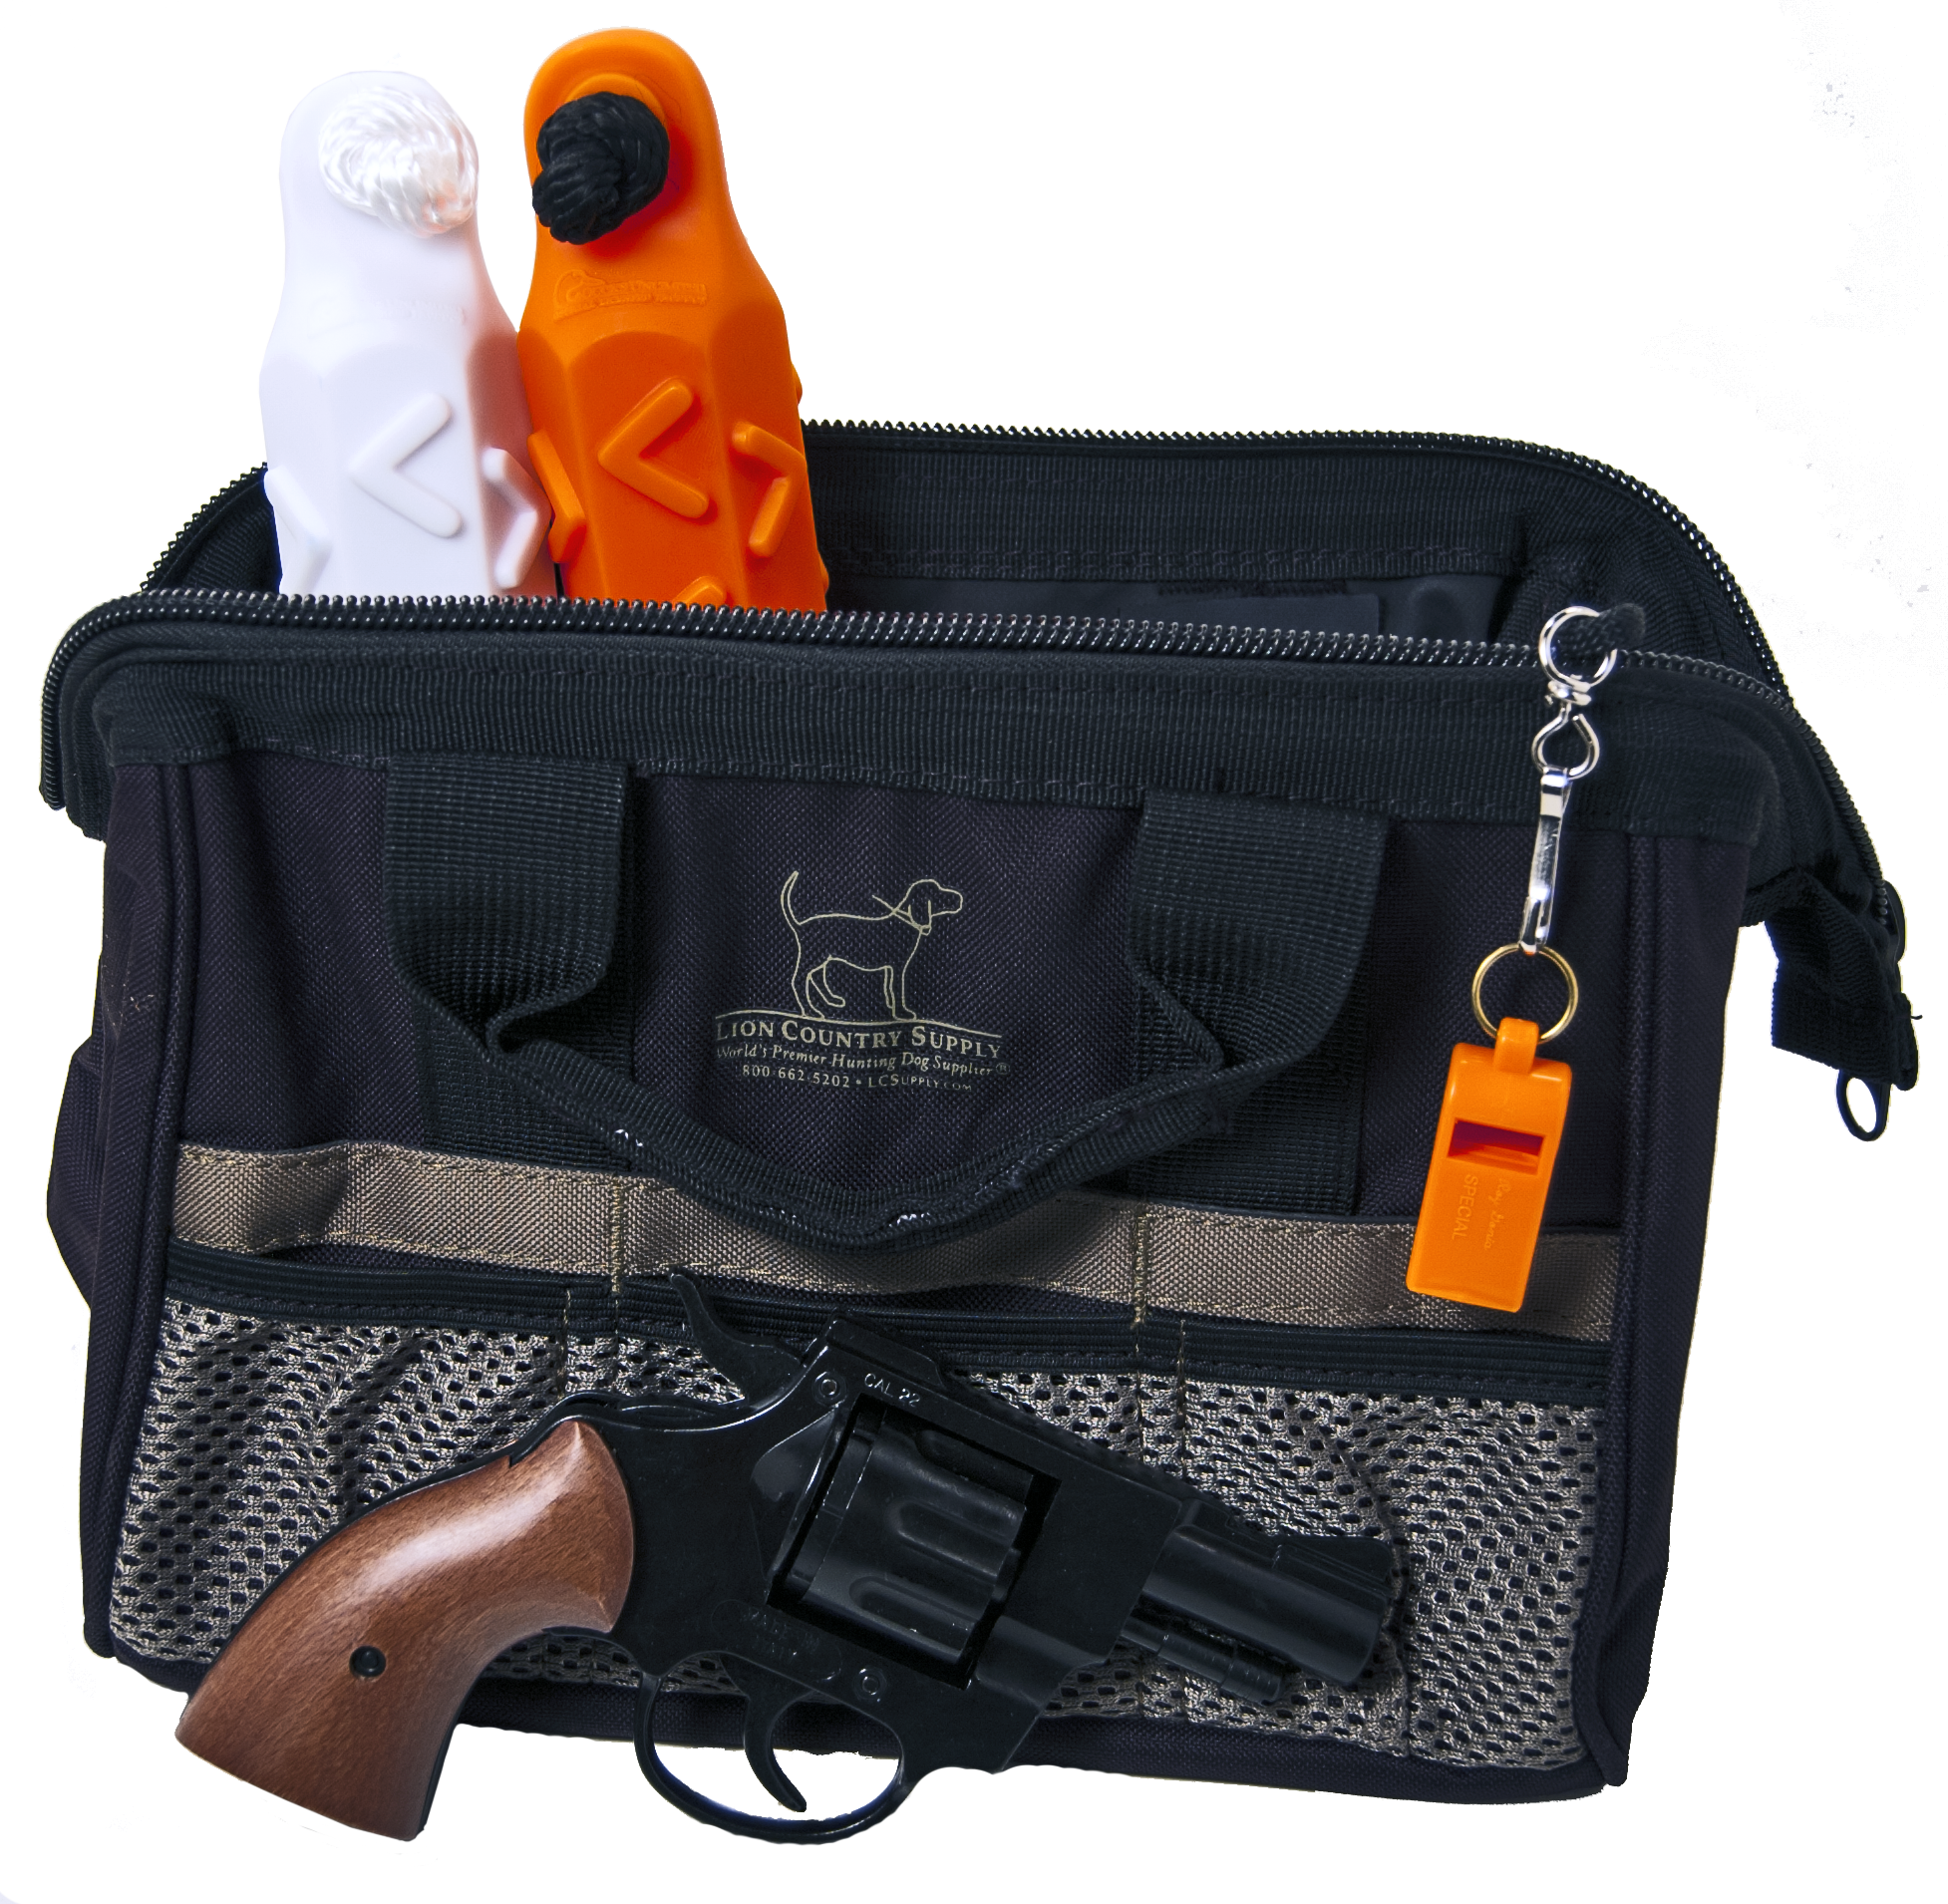 LCS Bumper/ Equipment Bag  Great for holding all of your hunting and training needs! At a great price!  #huntingbag #trainingbag #dogs #dog #hunting #lcs #lioncountrysupply